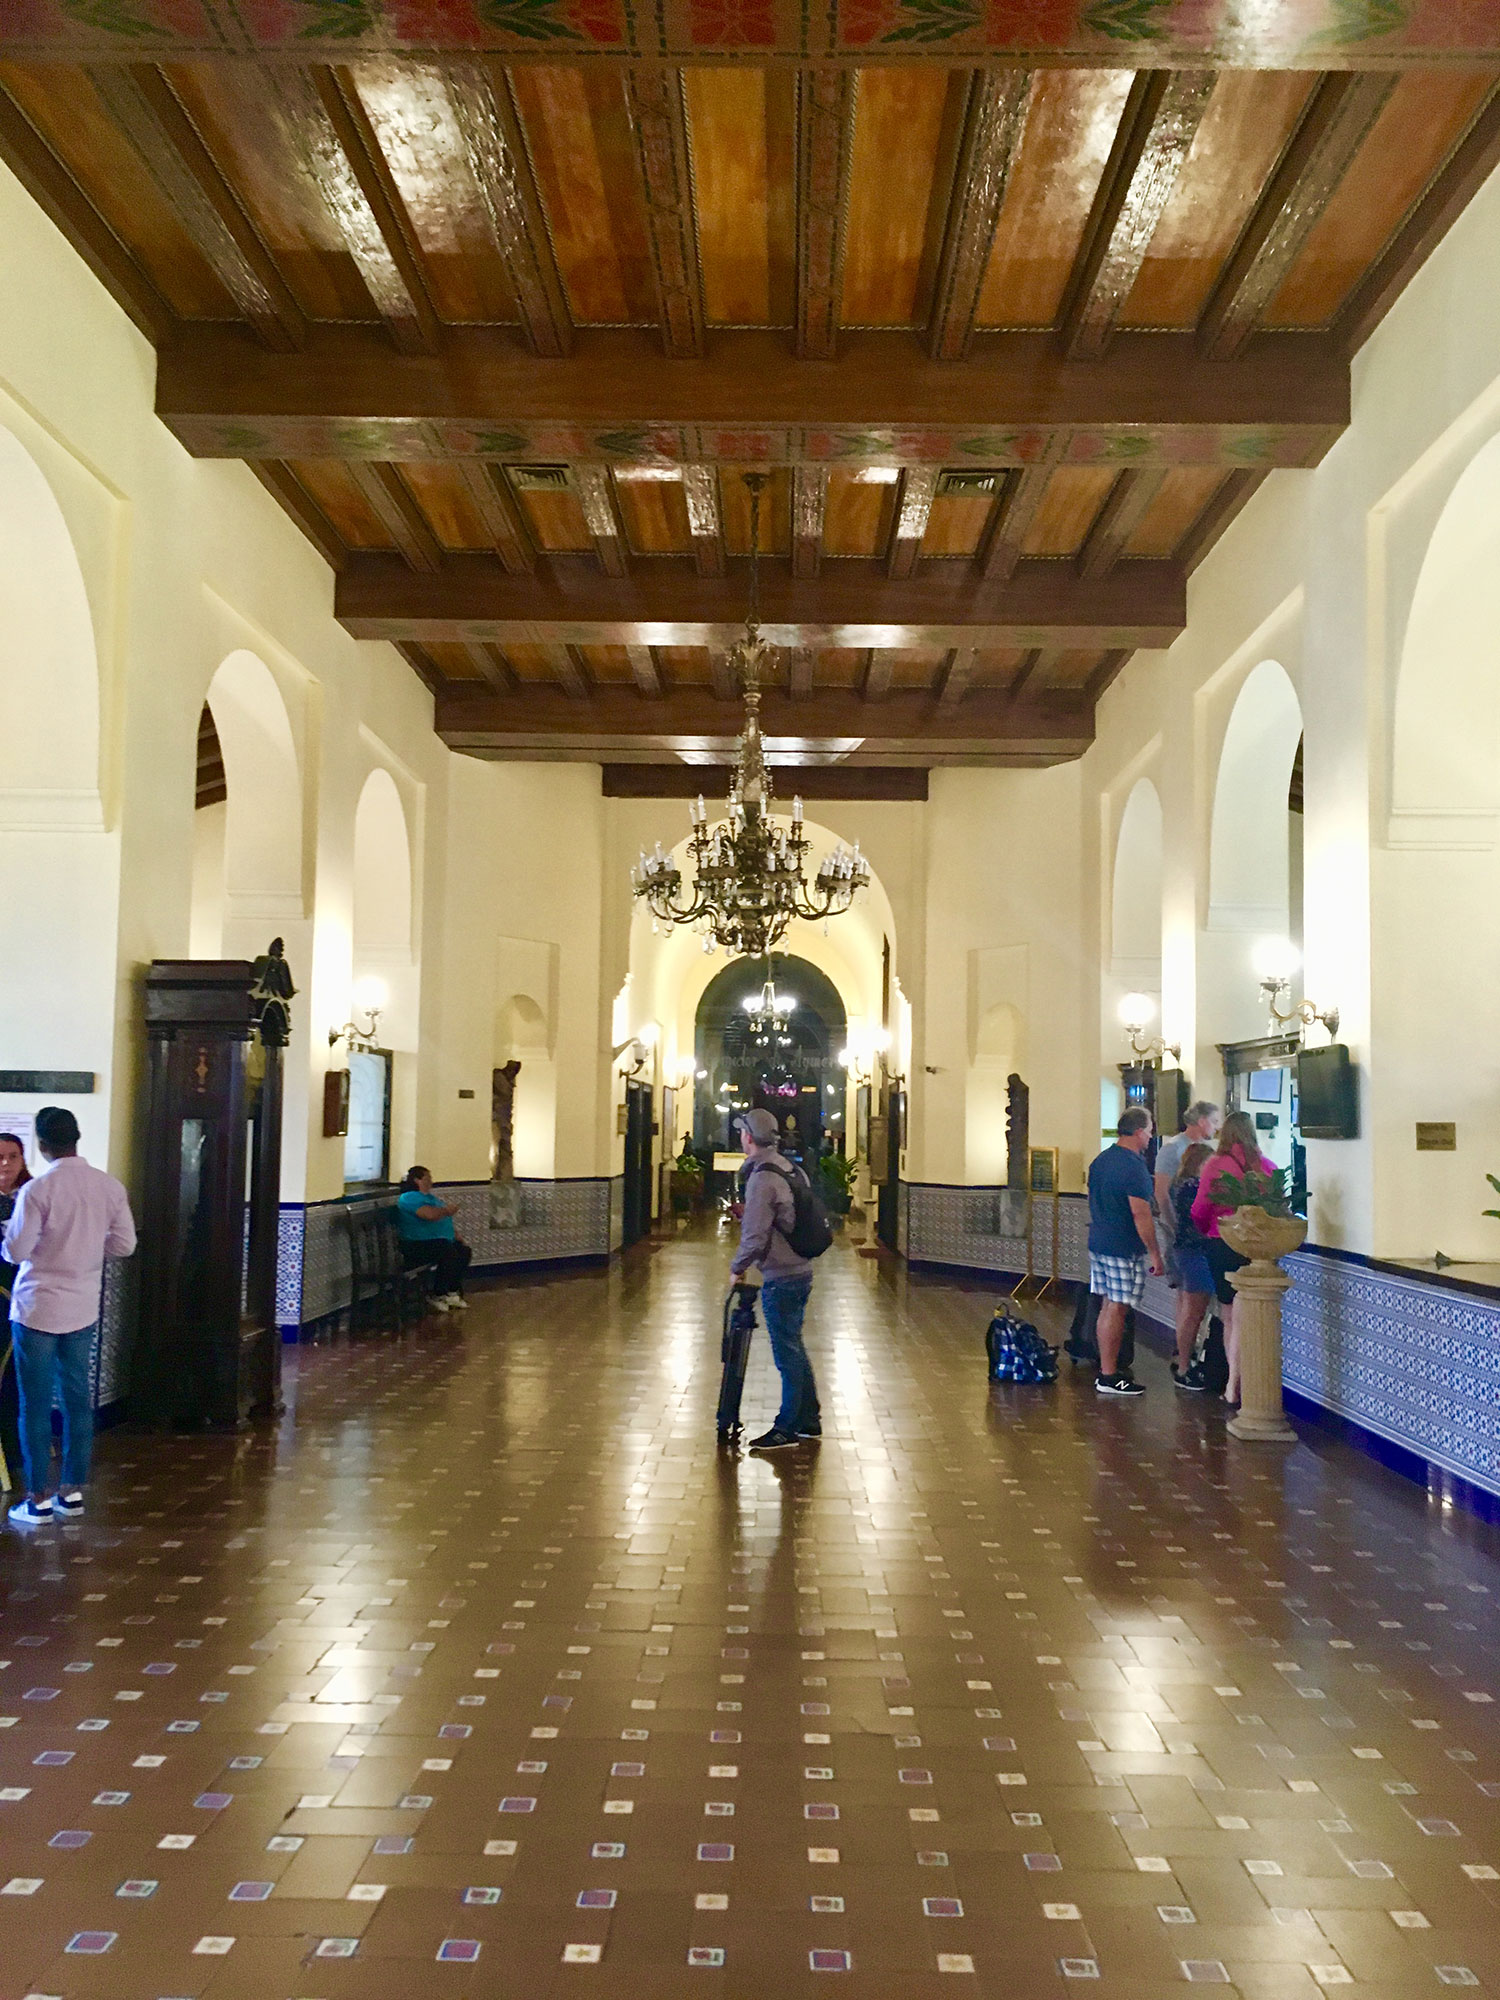 The entrance hall, Hotel Nacional.